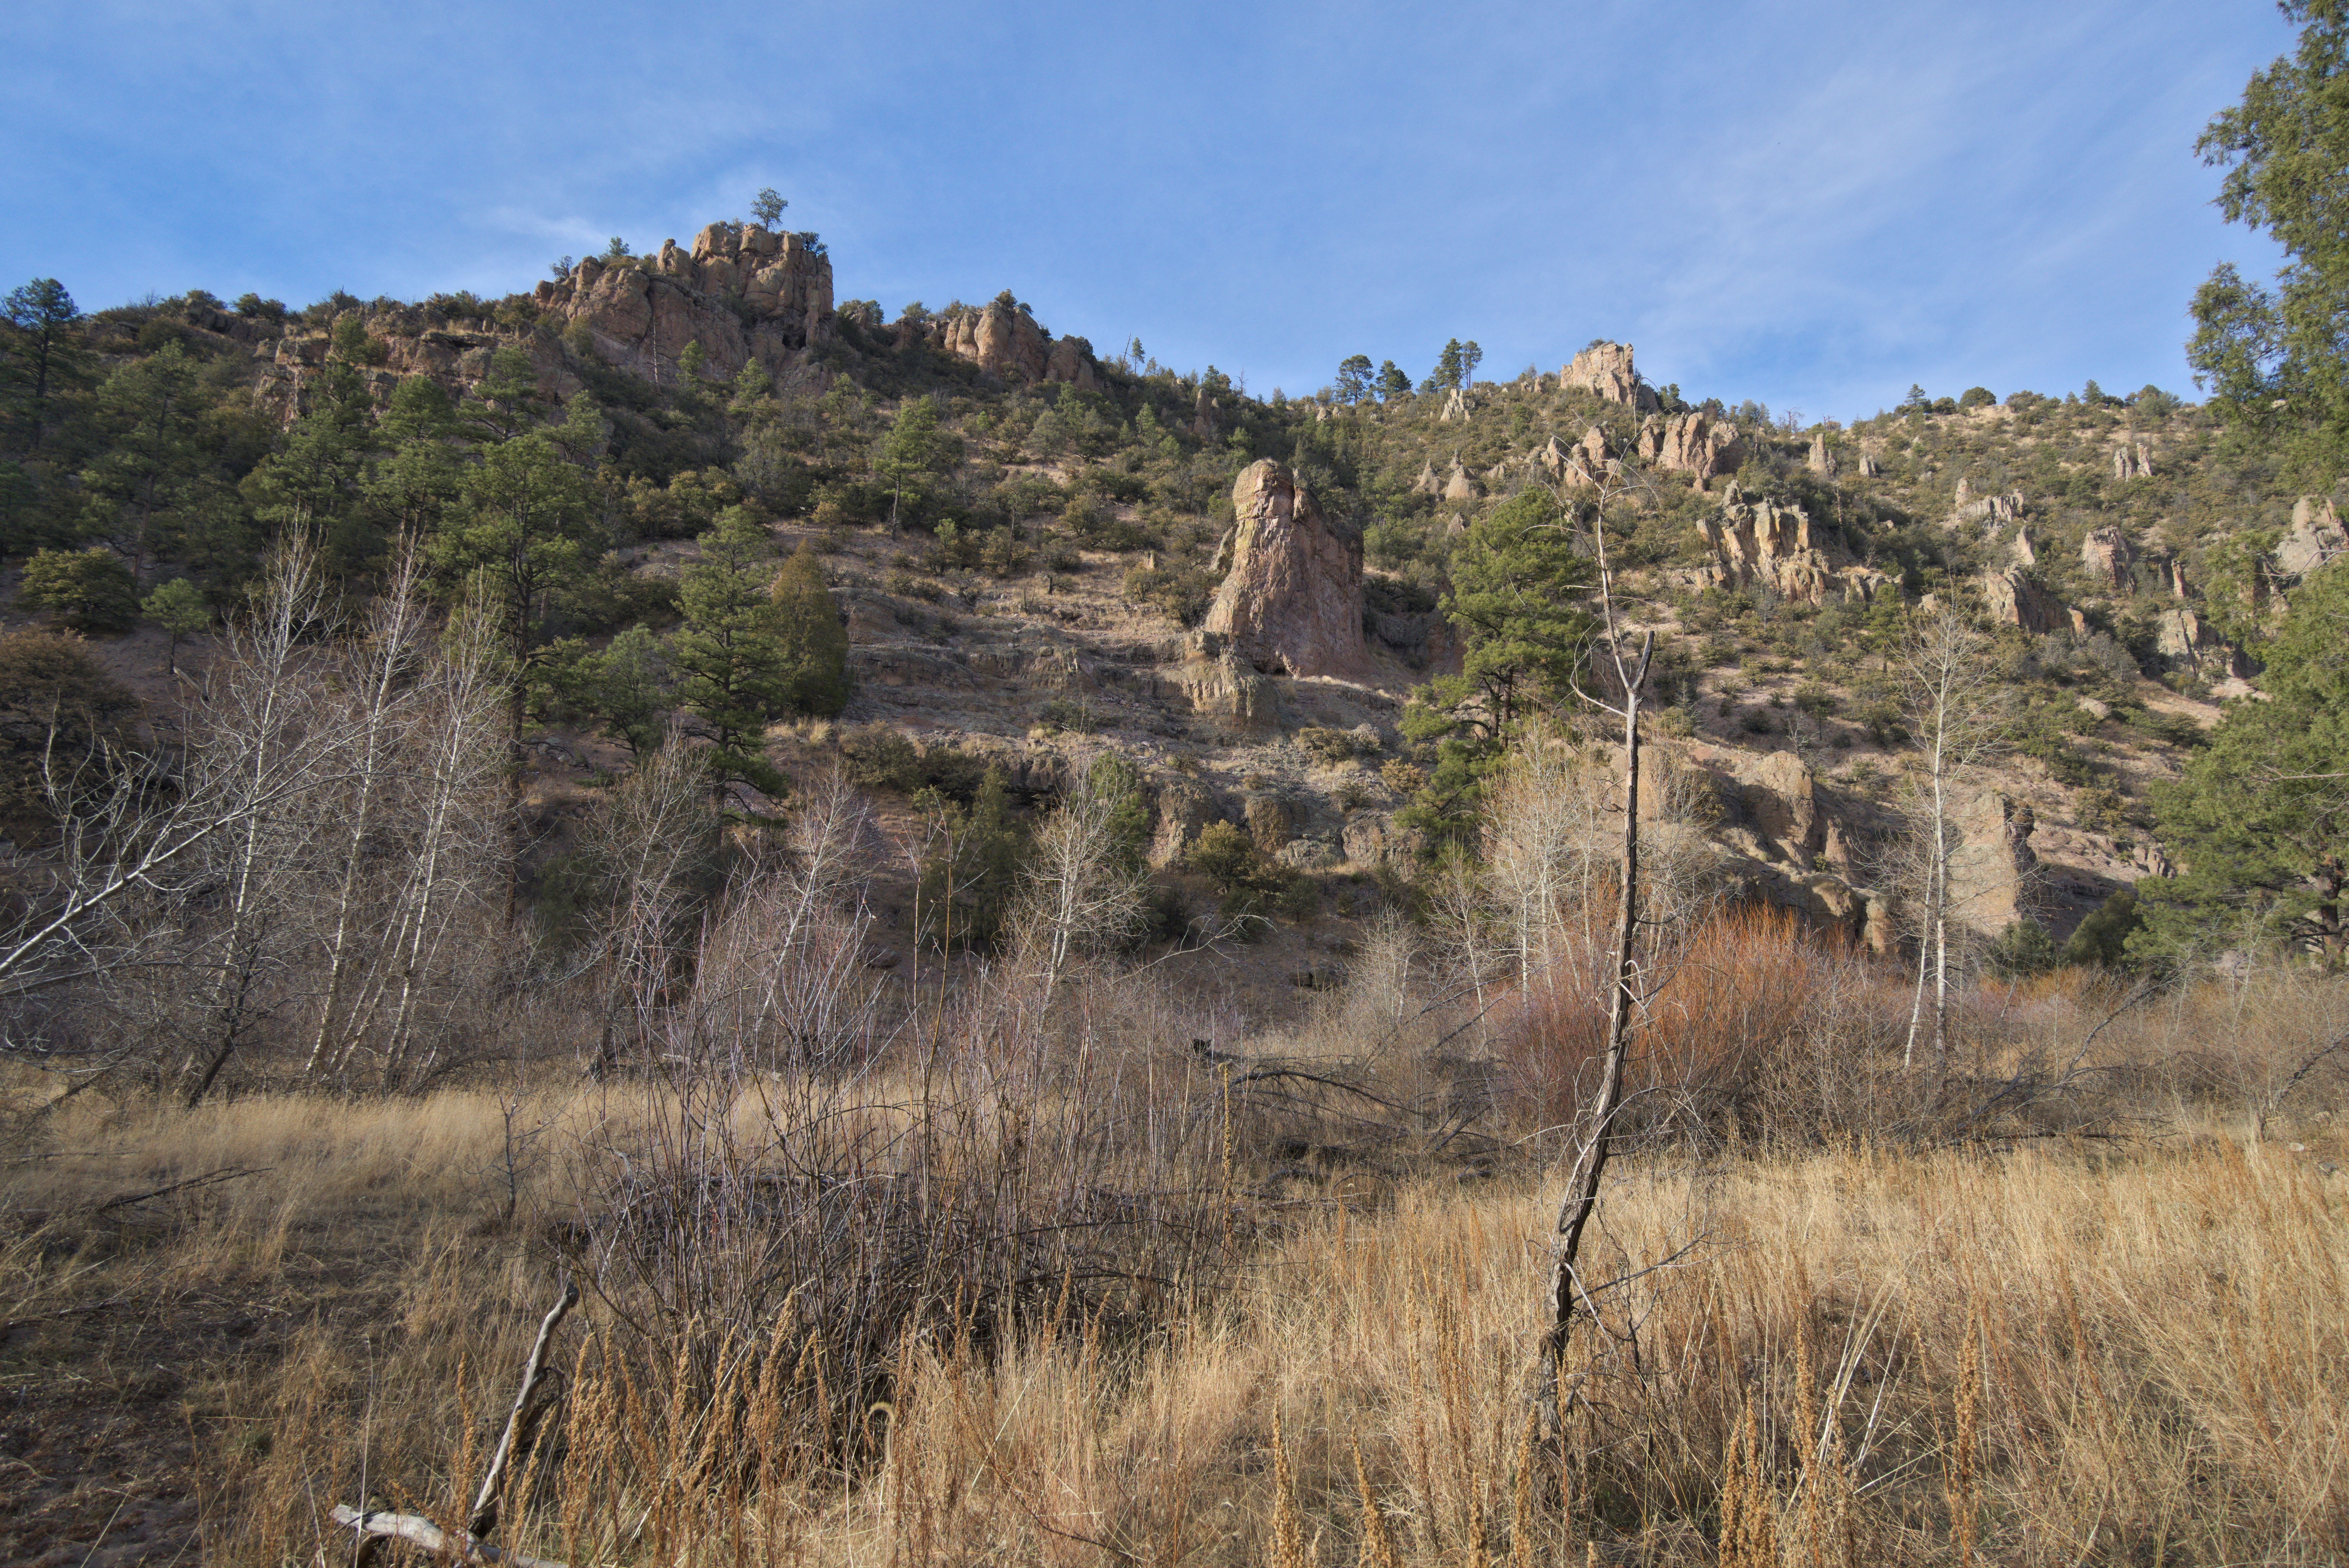 boulder covered hill in the Gila Wilderness, New Mexico